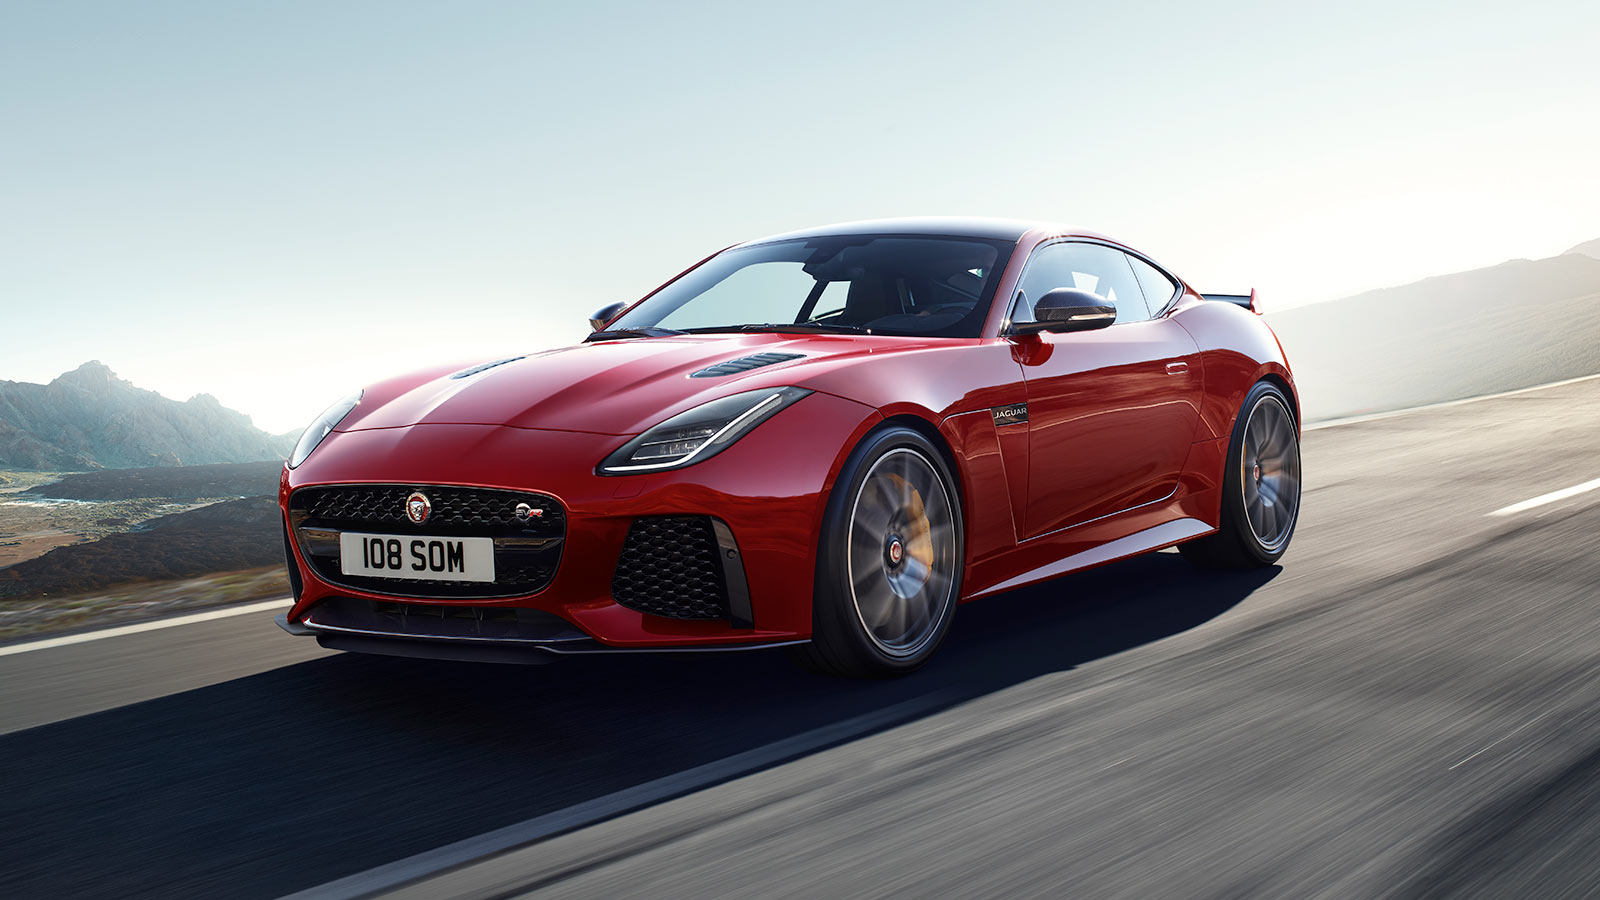 Jaguar F-TYPE 3.0 (380) S/C V6 Chequered Flag AWD SPECIAL EDITIONS image 8